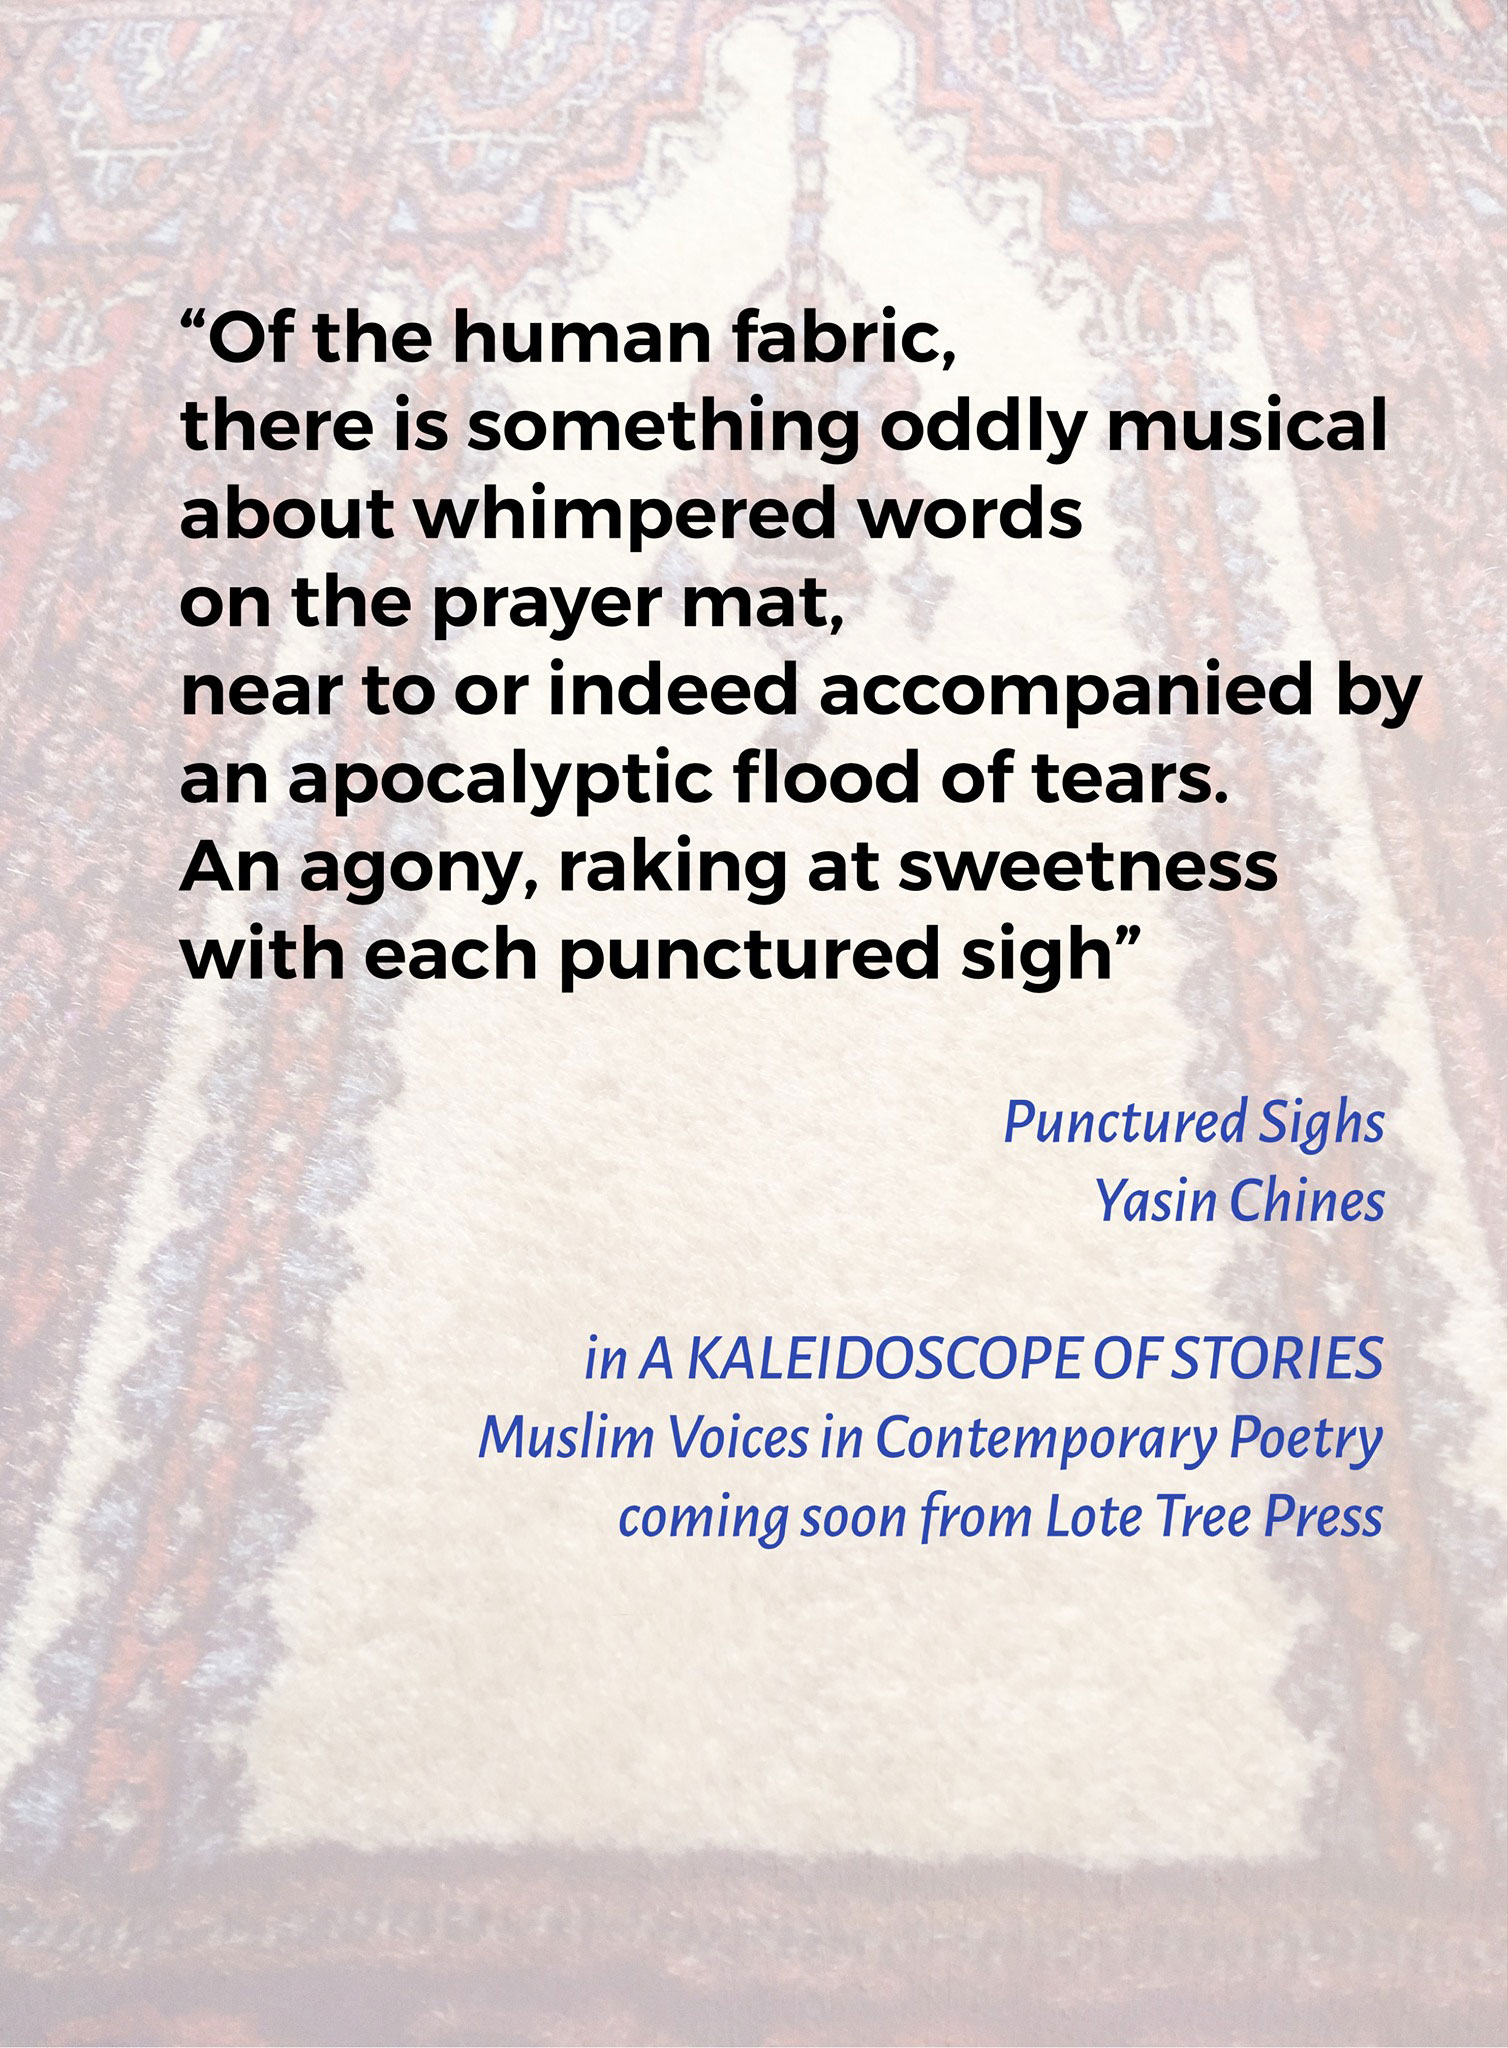 Punctured Sighs – Yasin Chines